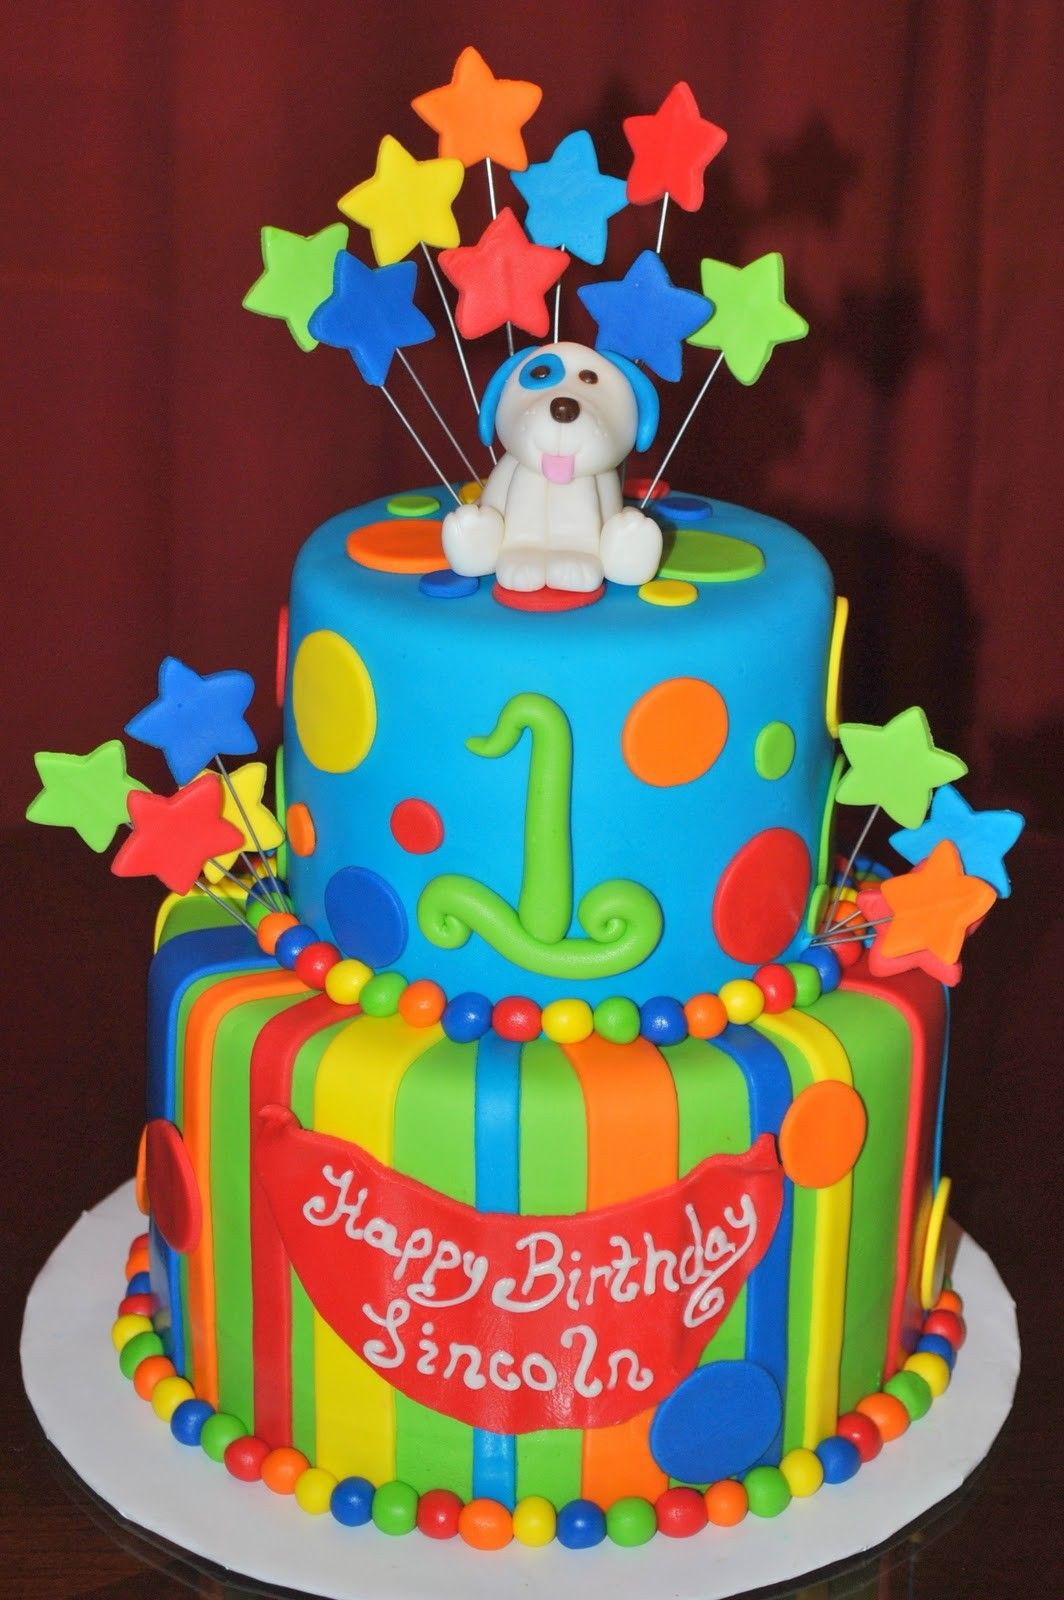 Birthday Cake Themes For Baby Boy : First Birthday Cake Ideas For Baby Boy Xanders First ...